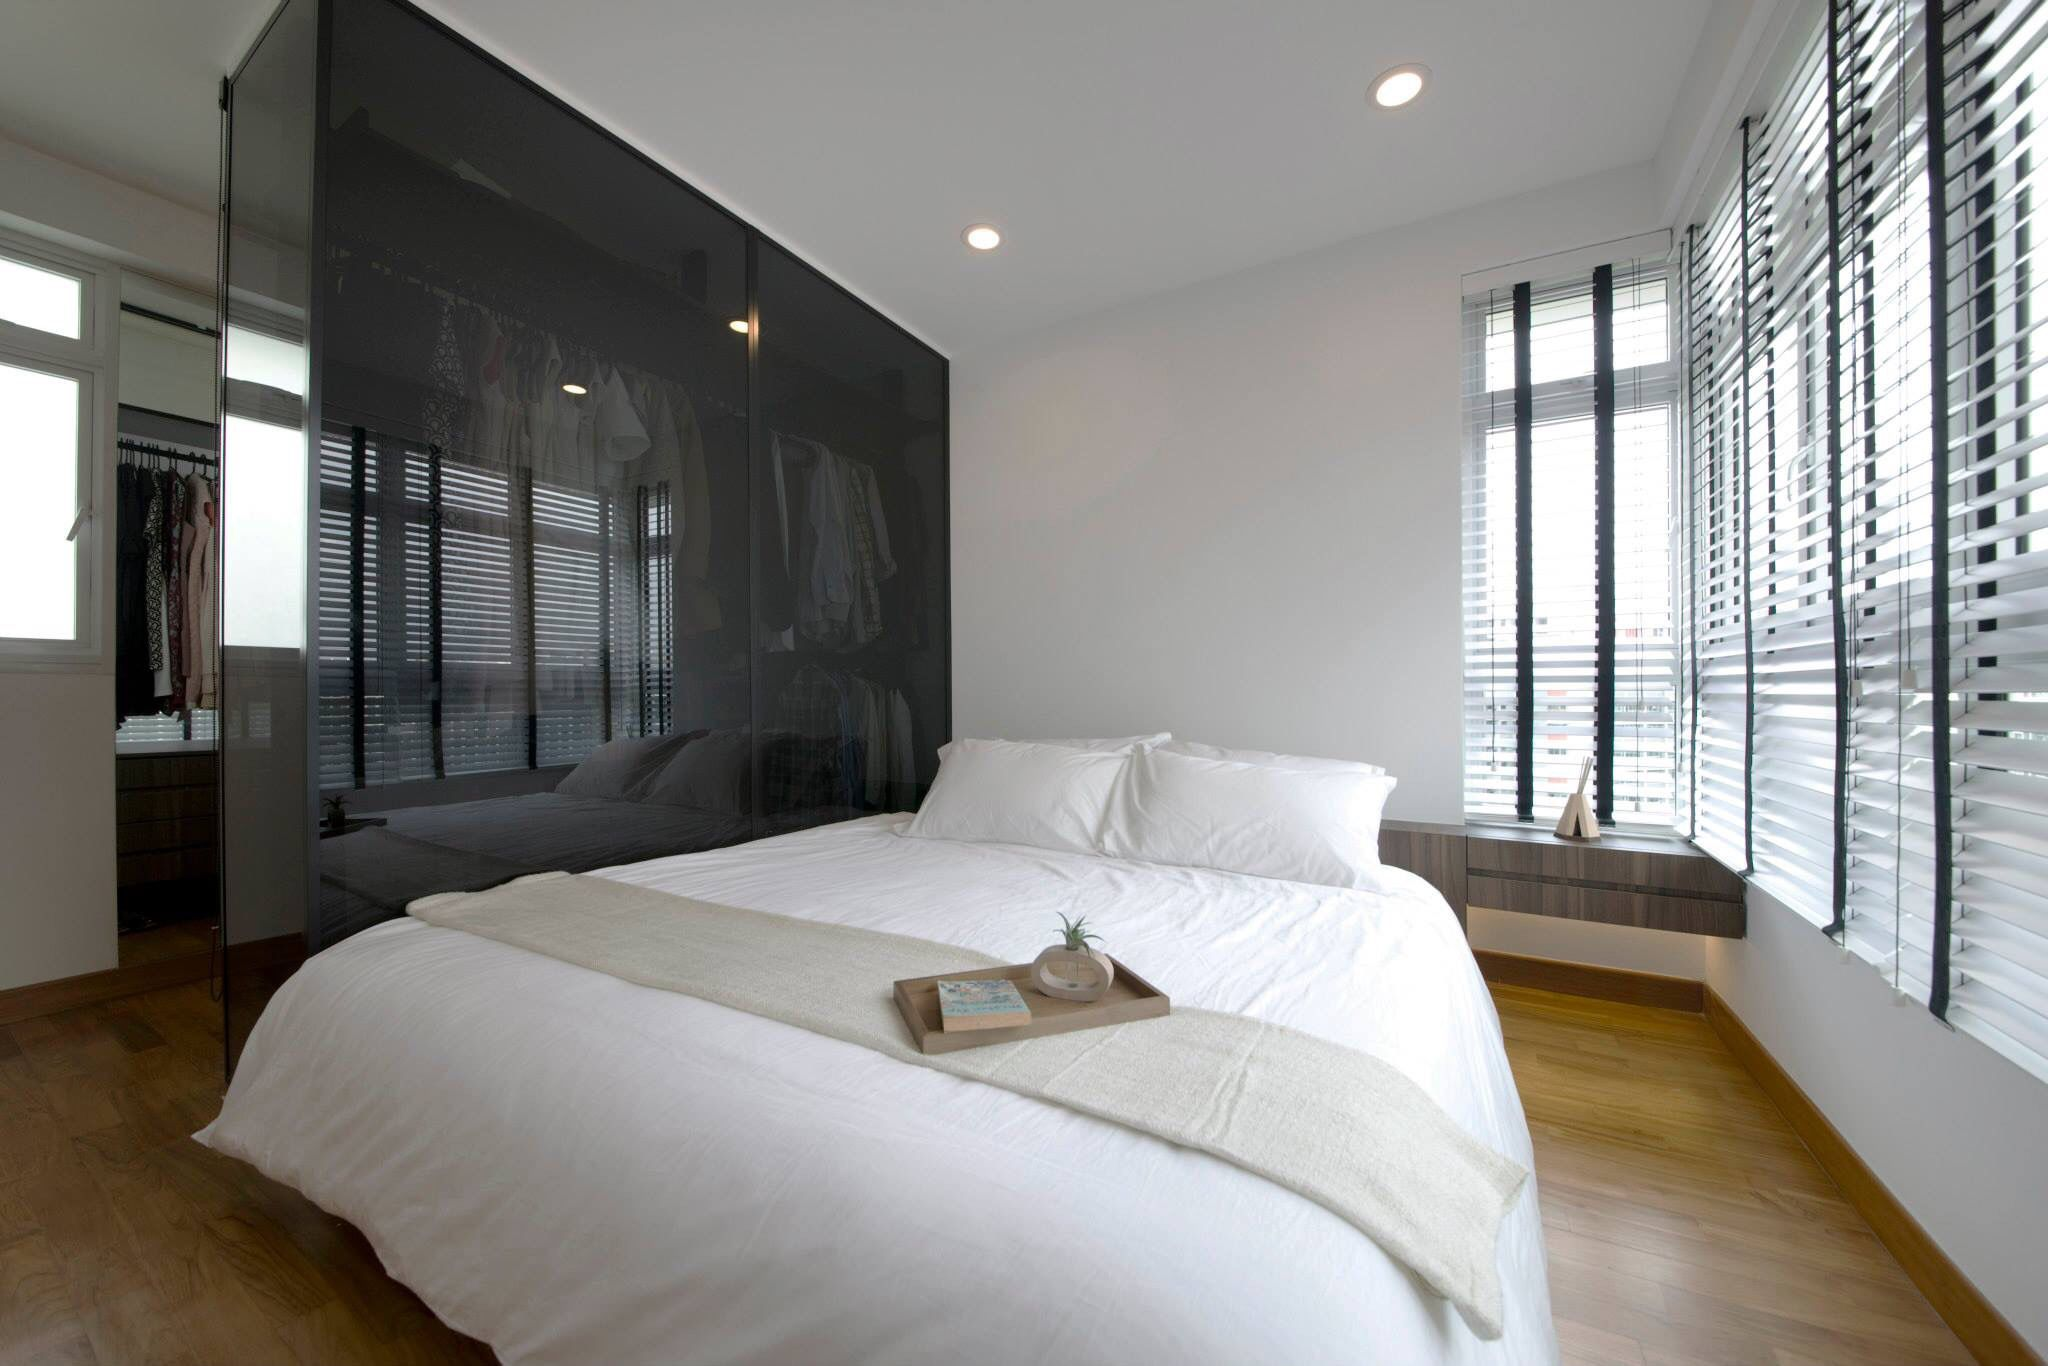 Master bedroom view with walk in wardrobe for the roof Bedroom wardrobe interior designs